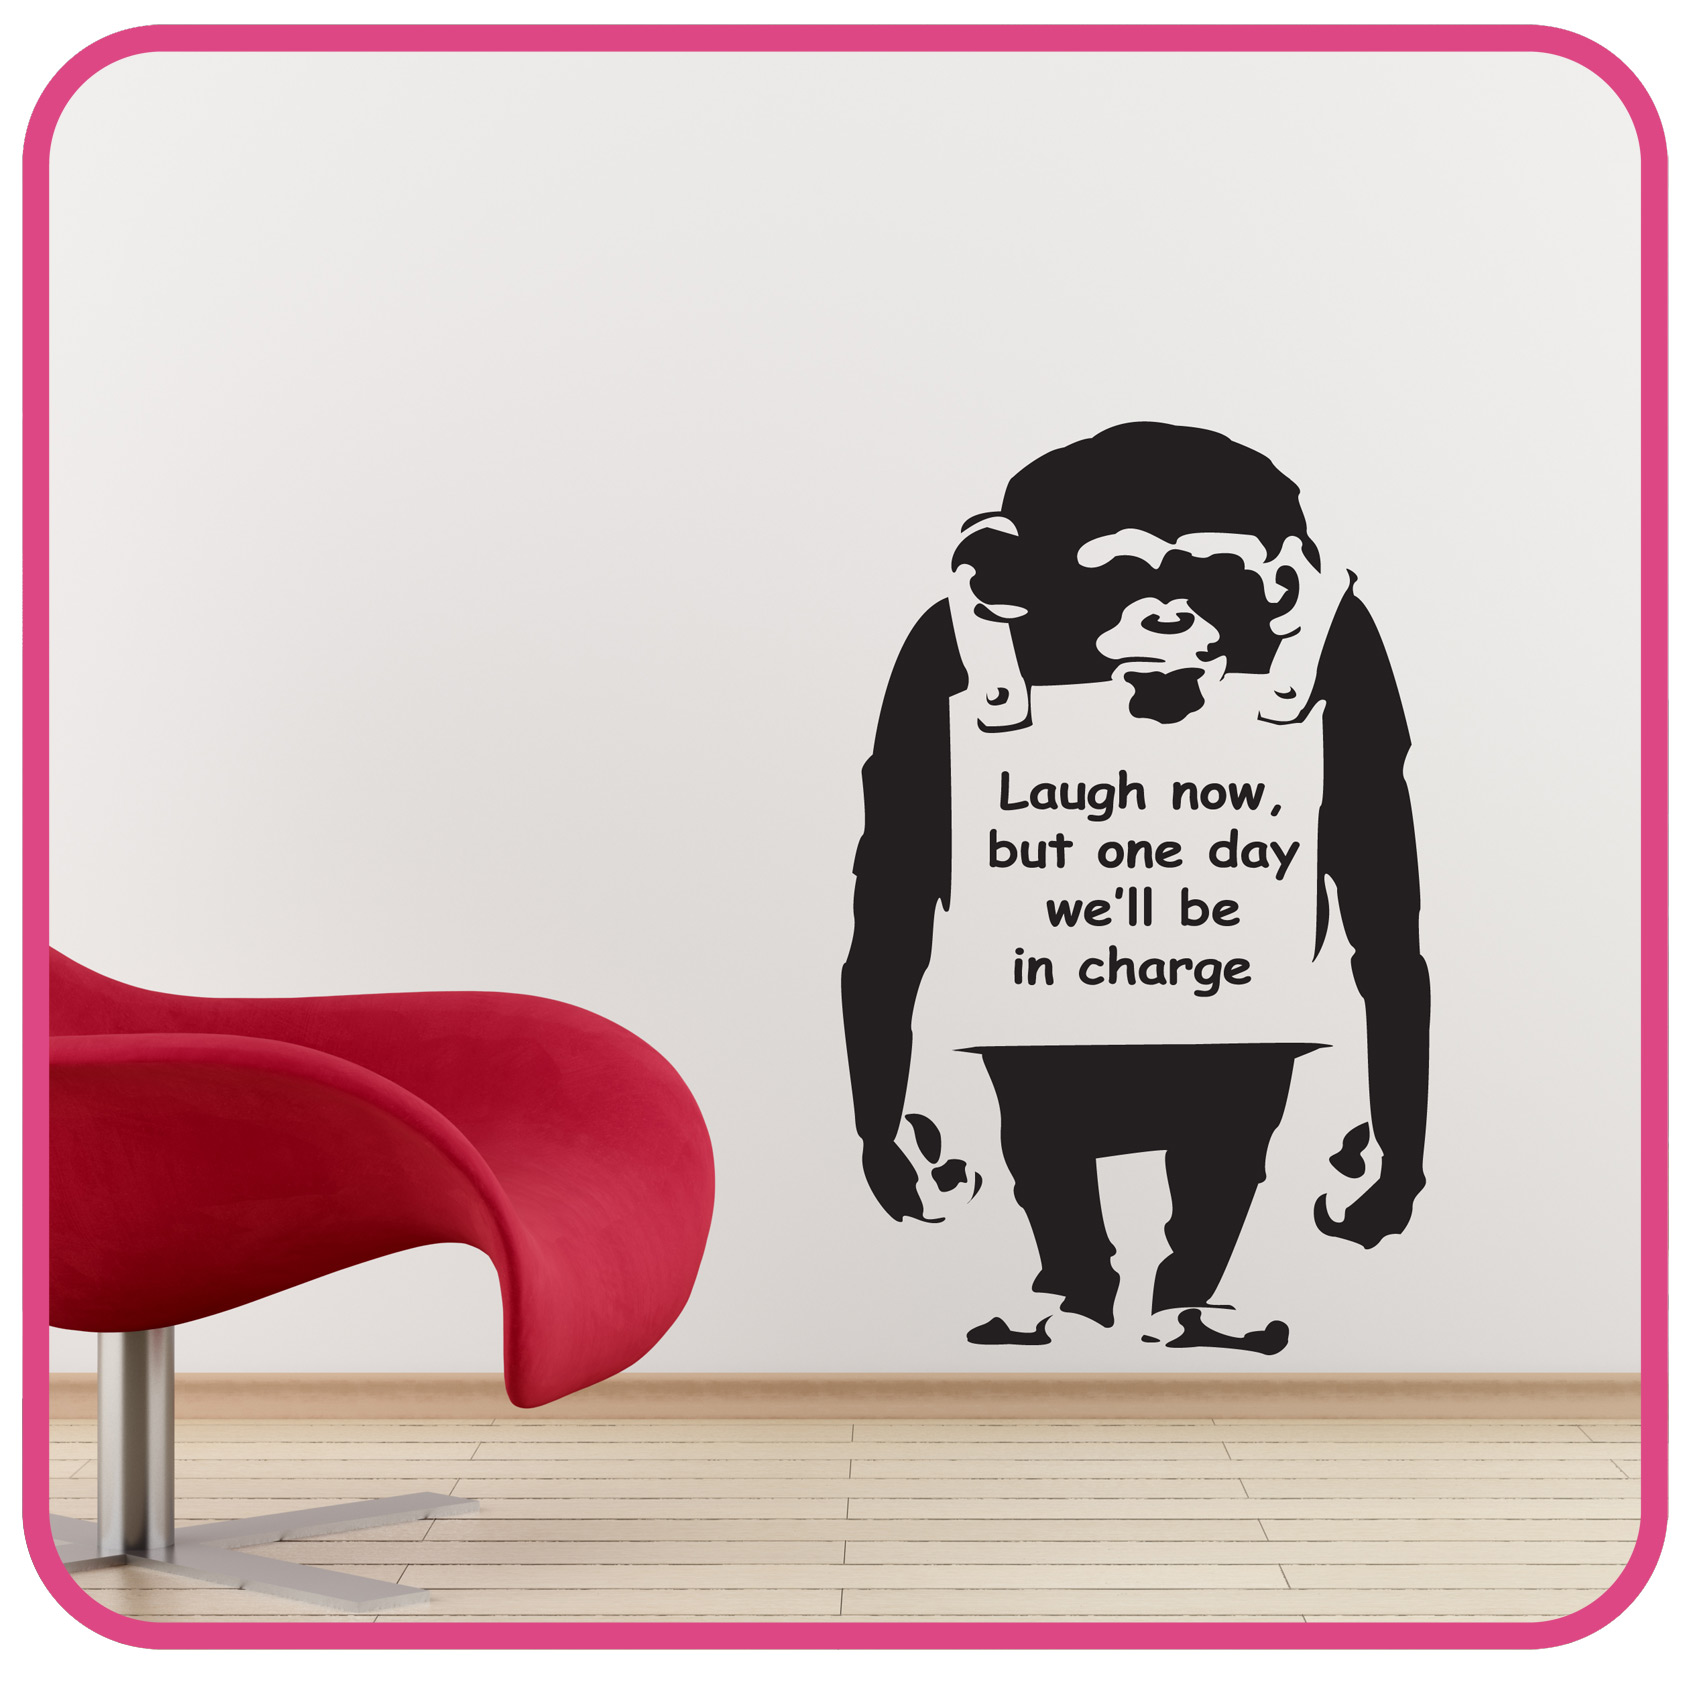 Wall Art Stickers Banksy : Banksy wall stickers monkey decals art ba